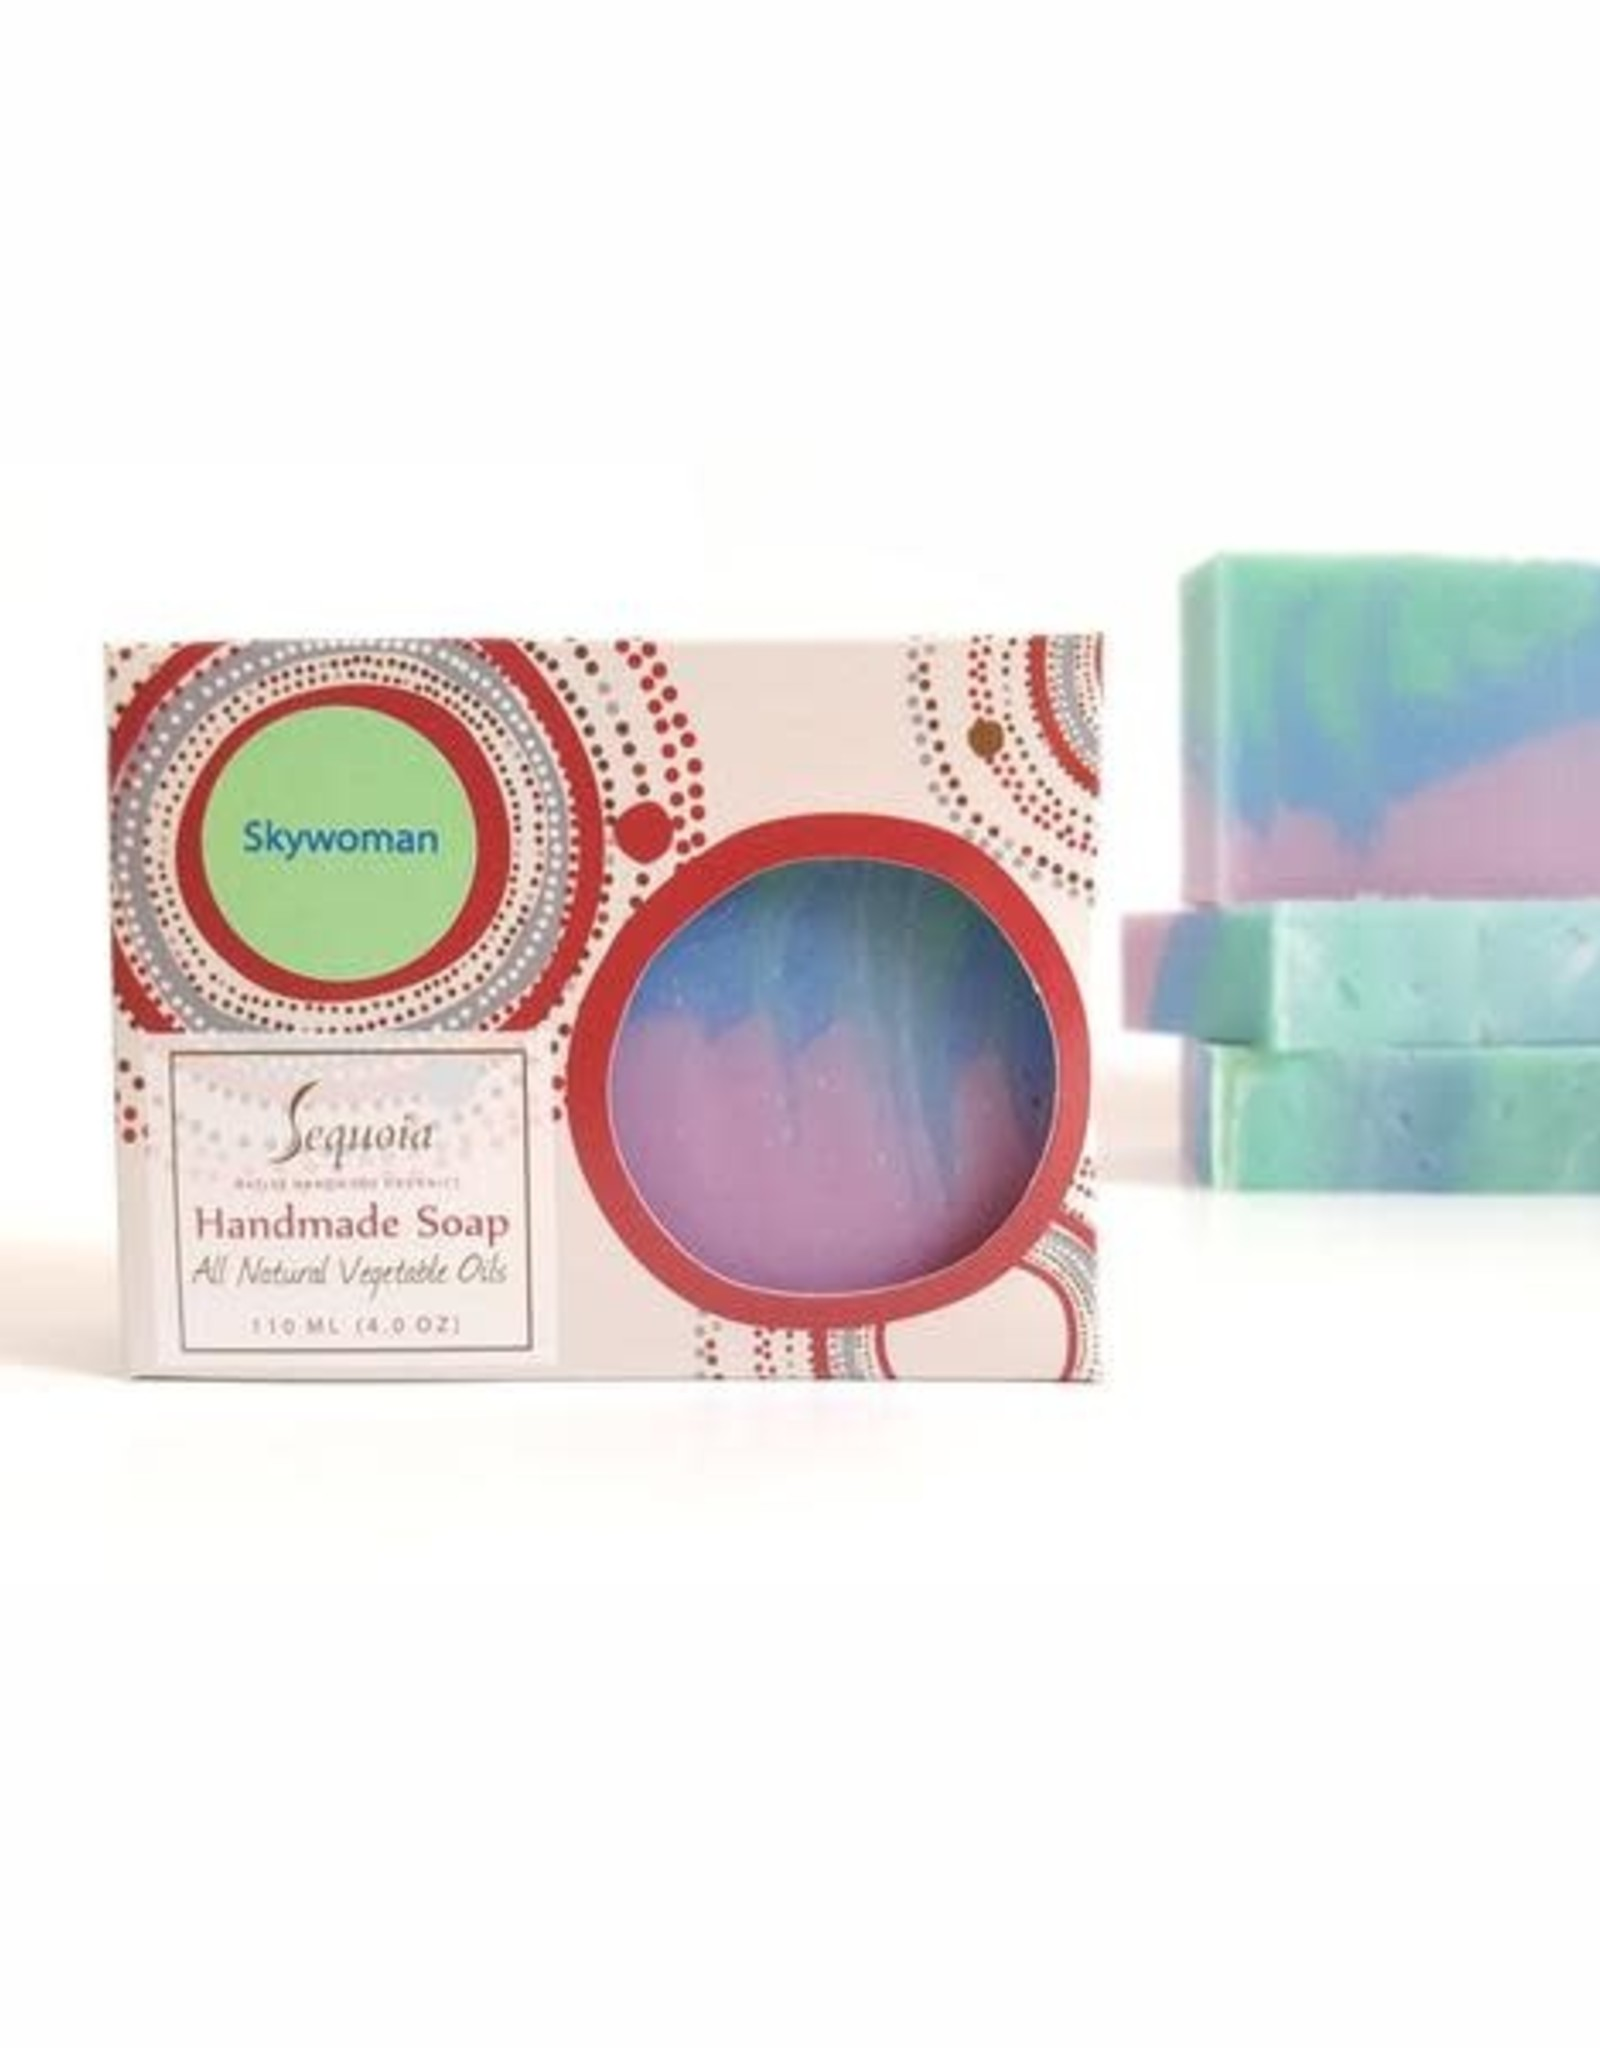 Sequoia Handmade Soap 4oz - Skywomen